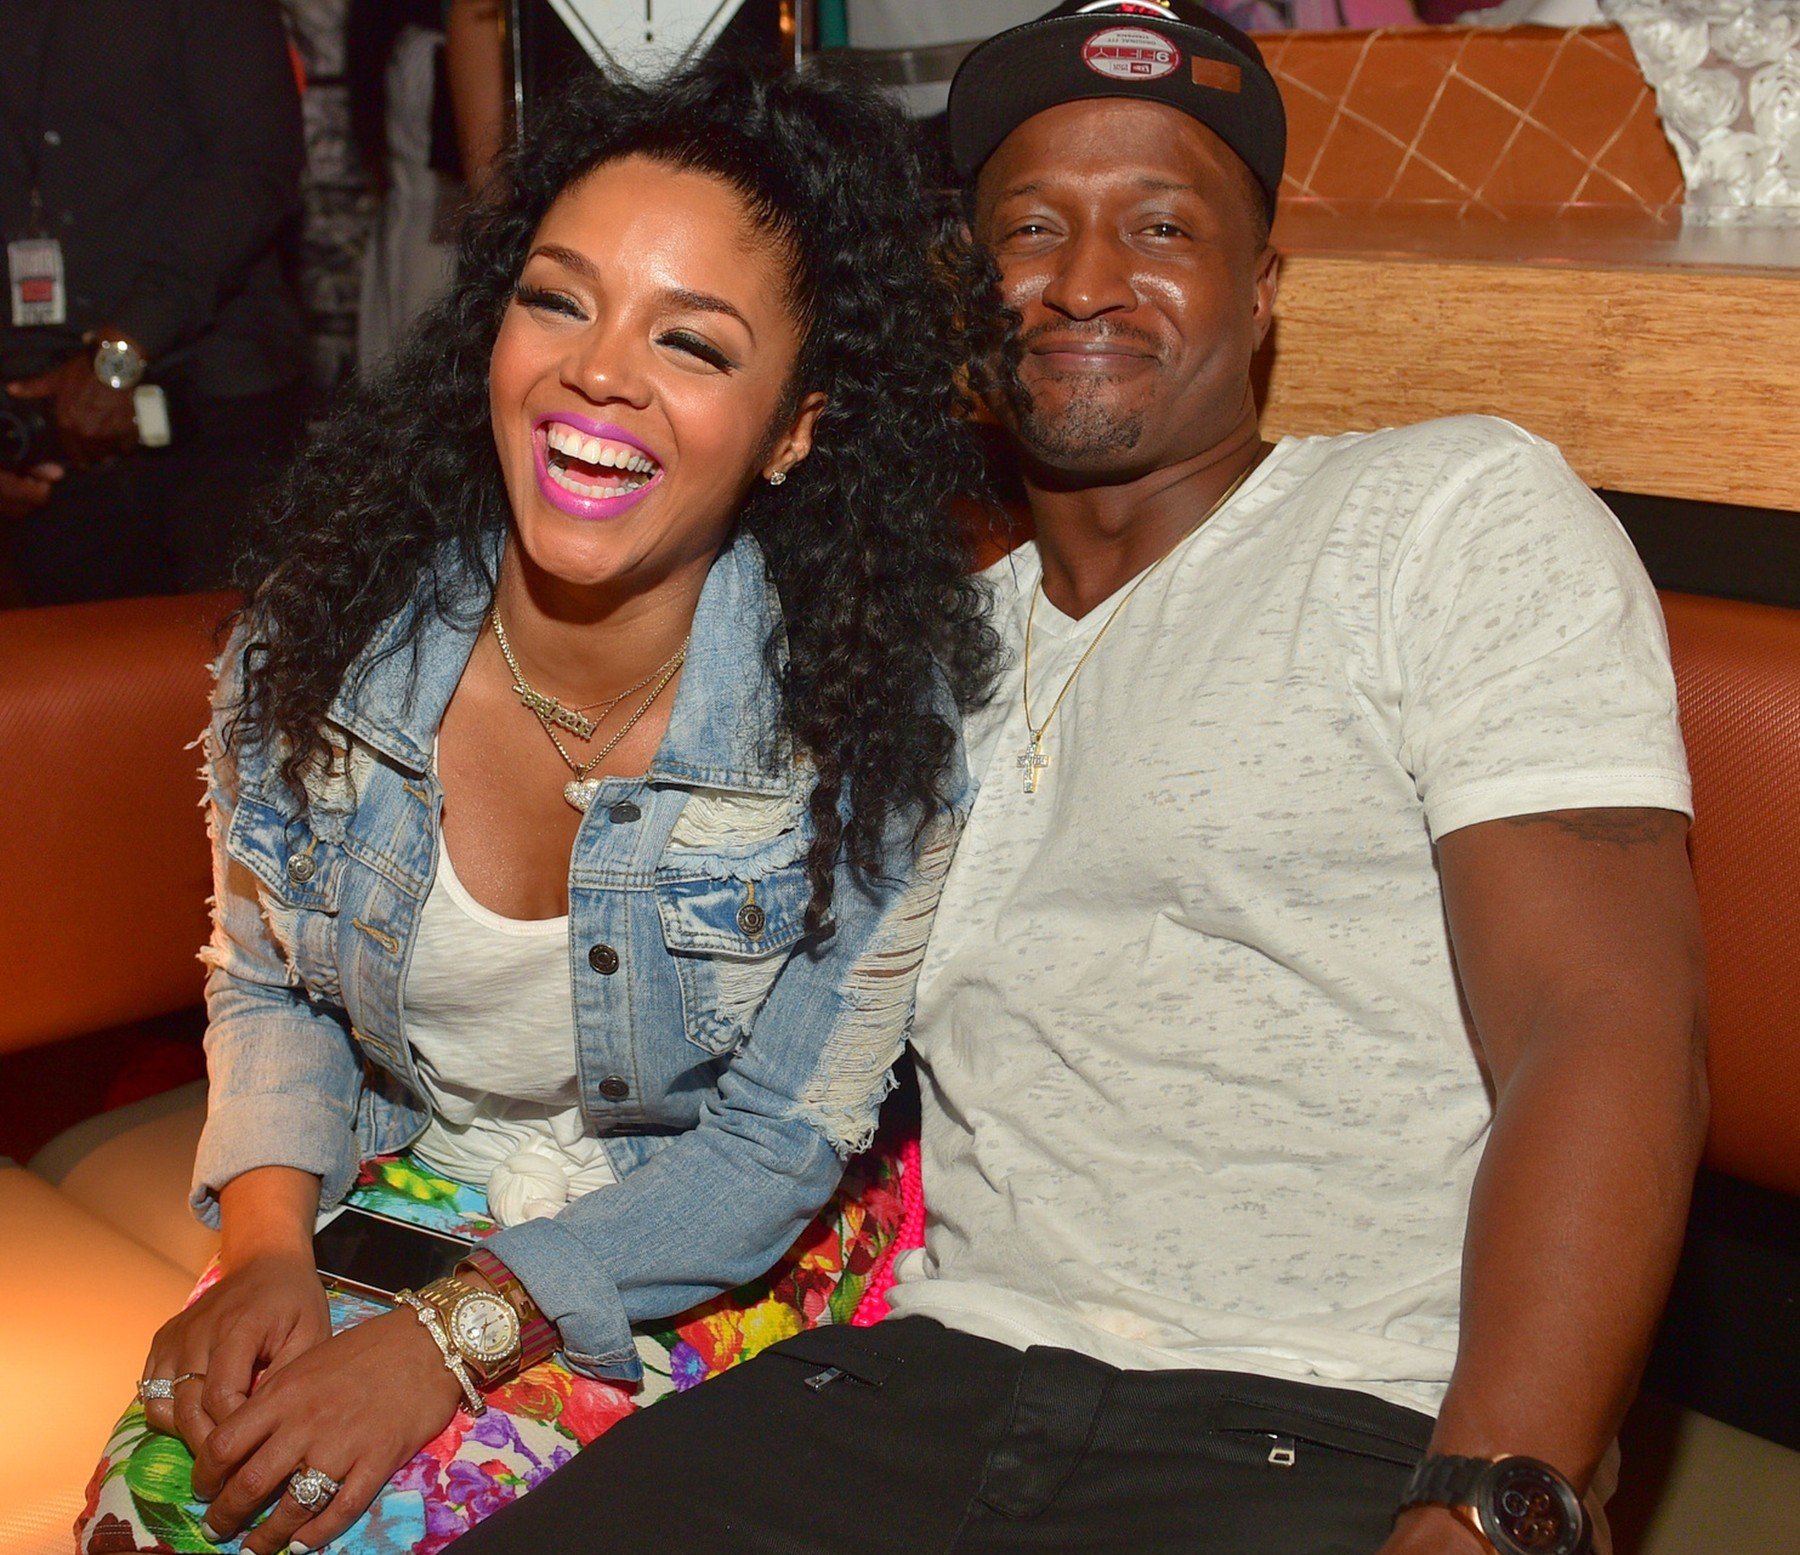 rasheeda-and-kirk-frost-are-having-fun-with-lil-scrappy-and-bambi-benson-while-smoking-an-invisible-blunt-watch-the-videos